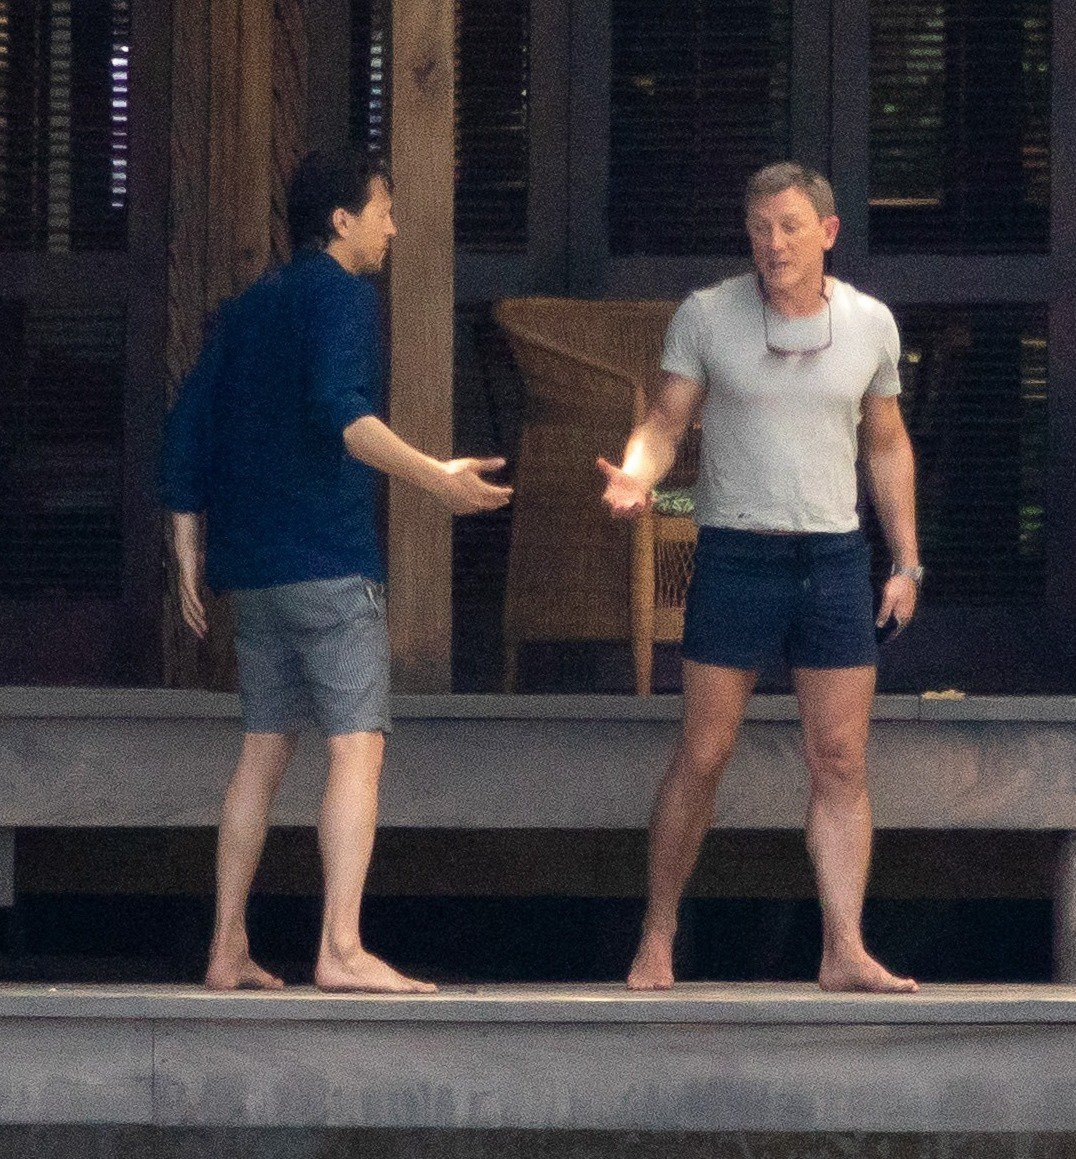 Daniel Craig has a exhilarated contention during a mangle in filming with executive Cary Joji Fukunaga on a set of new Bond film in Jamaica